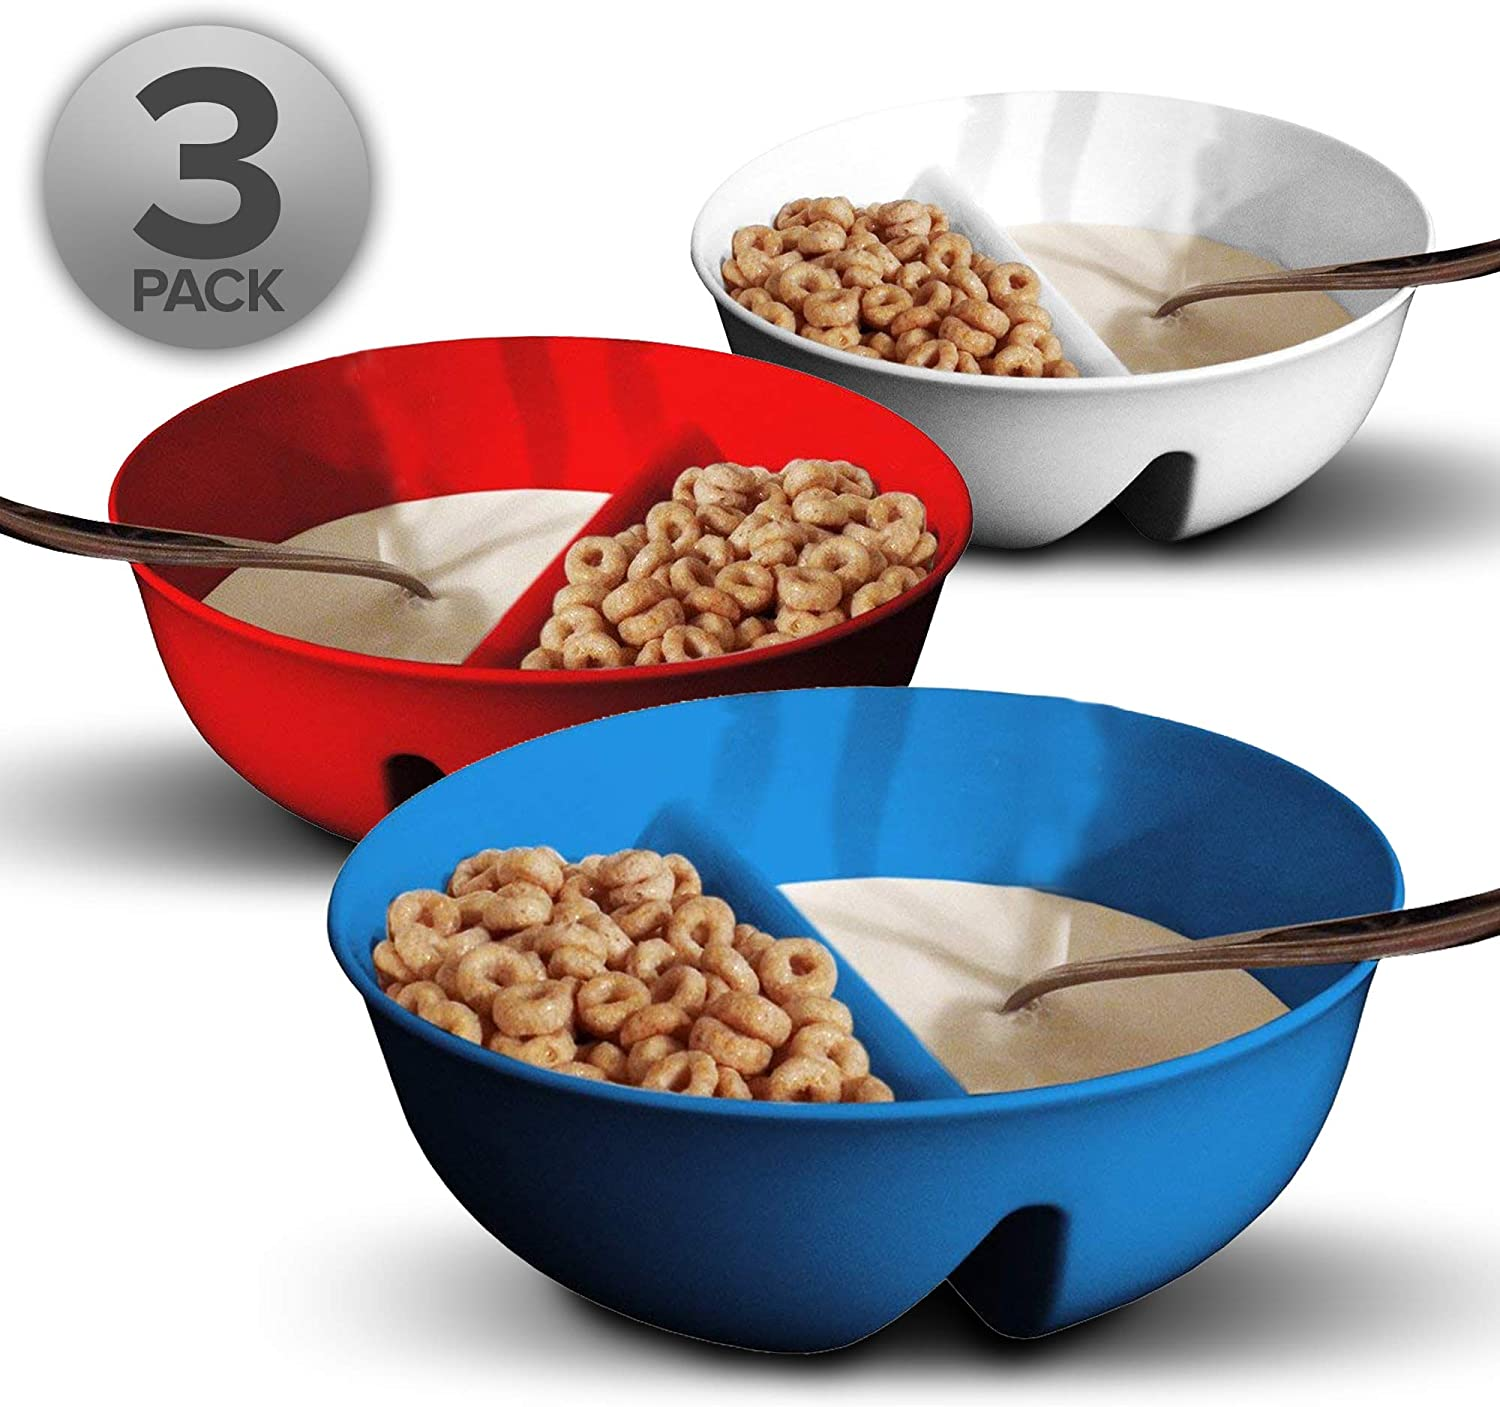 3 Pack - Just Crunch Anti-Soggy Cereal Bowl - Keeps Cereal Fresh & Crunchy | BPA Free | Microwave Safe | Ice Cream & Topping, Yogurt & Berries, Fries & Ketchup and More – Red, White & Blue